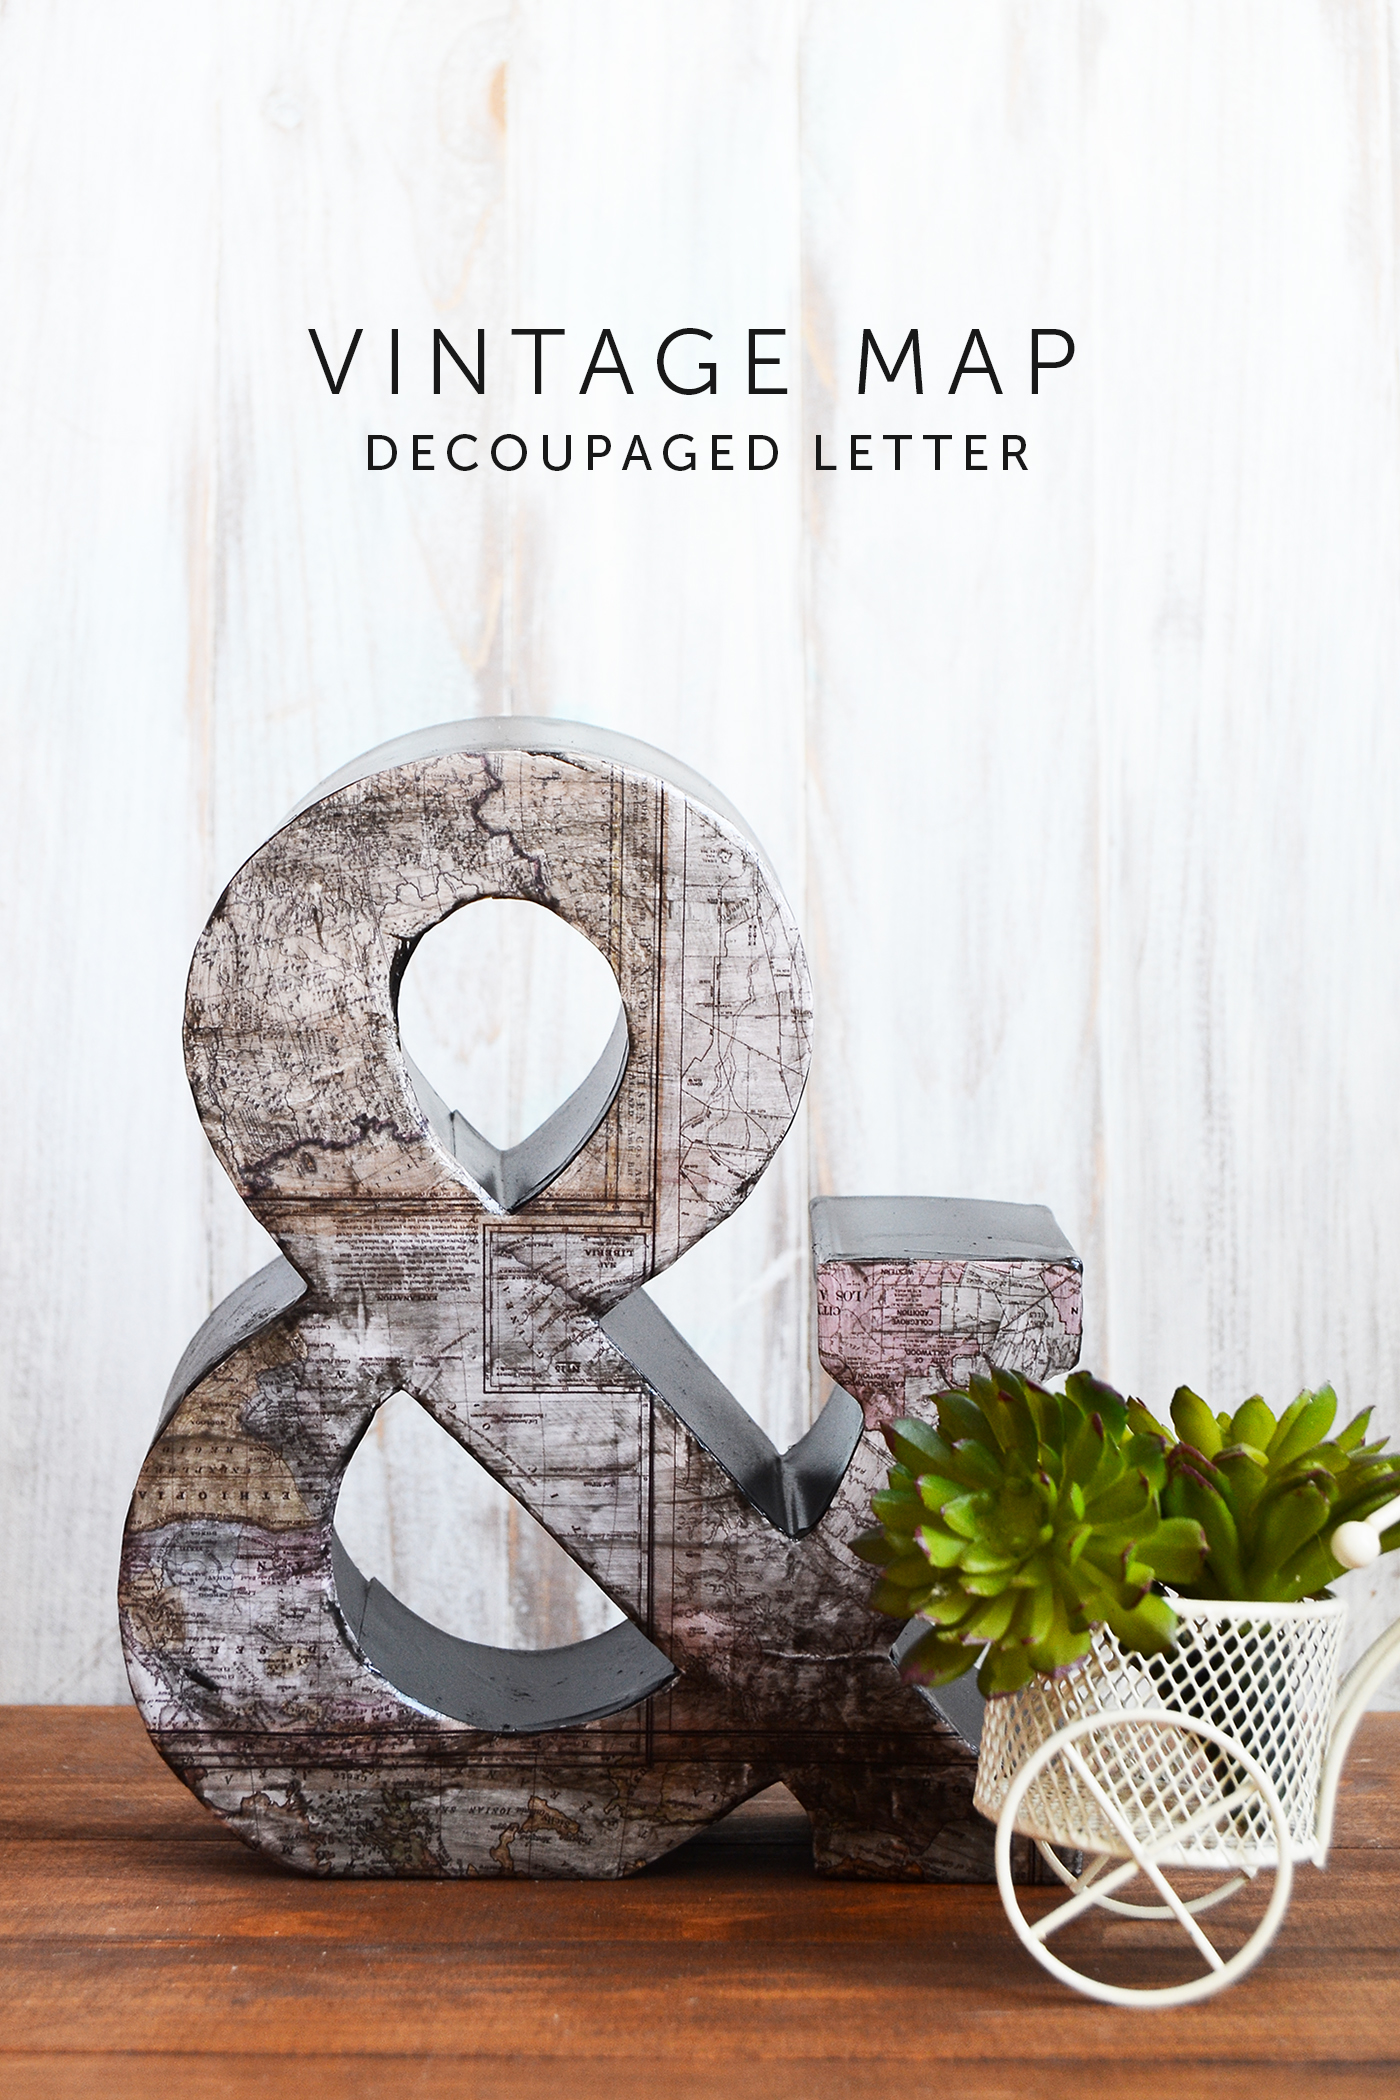 Use Mod Podge, paint, and map scrapbook paper to make this unique decoupage letter for home decor. It's easy to create your own with a fun vintage effect!